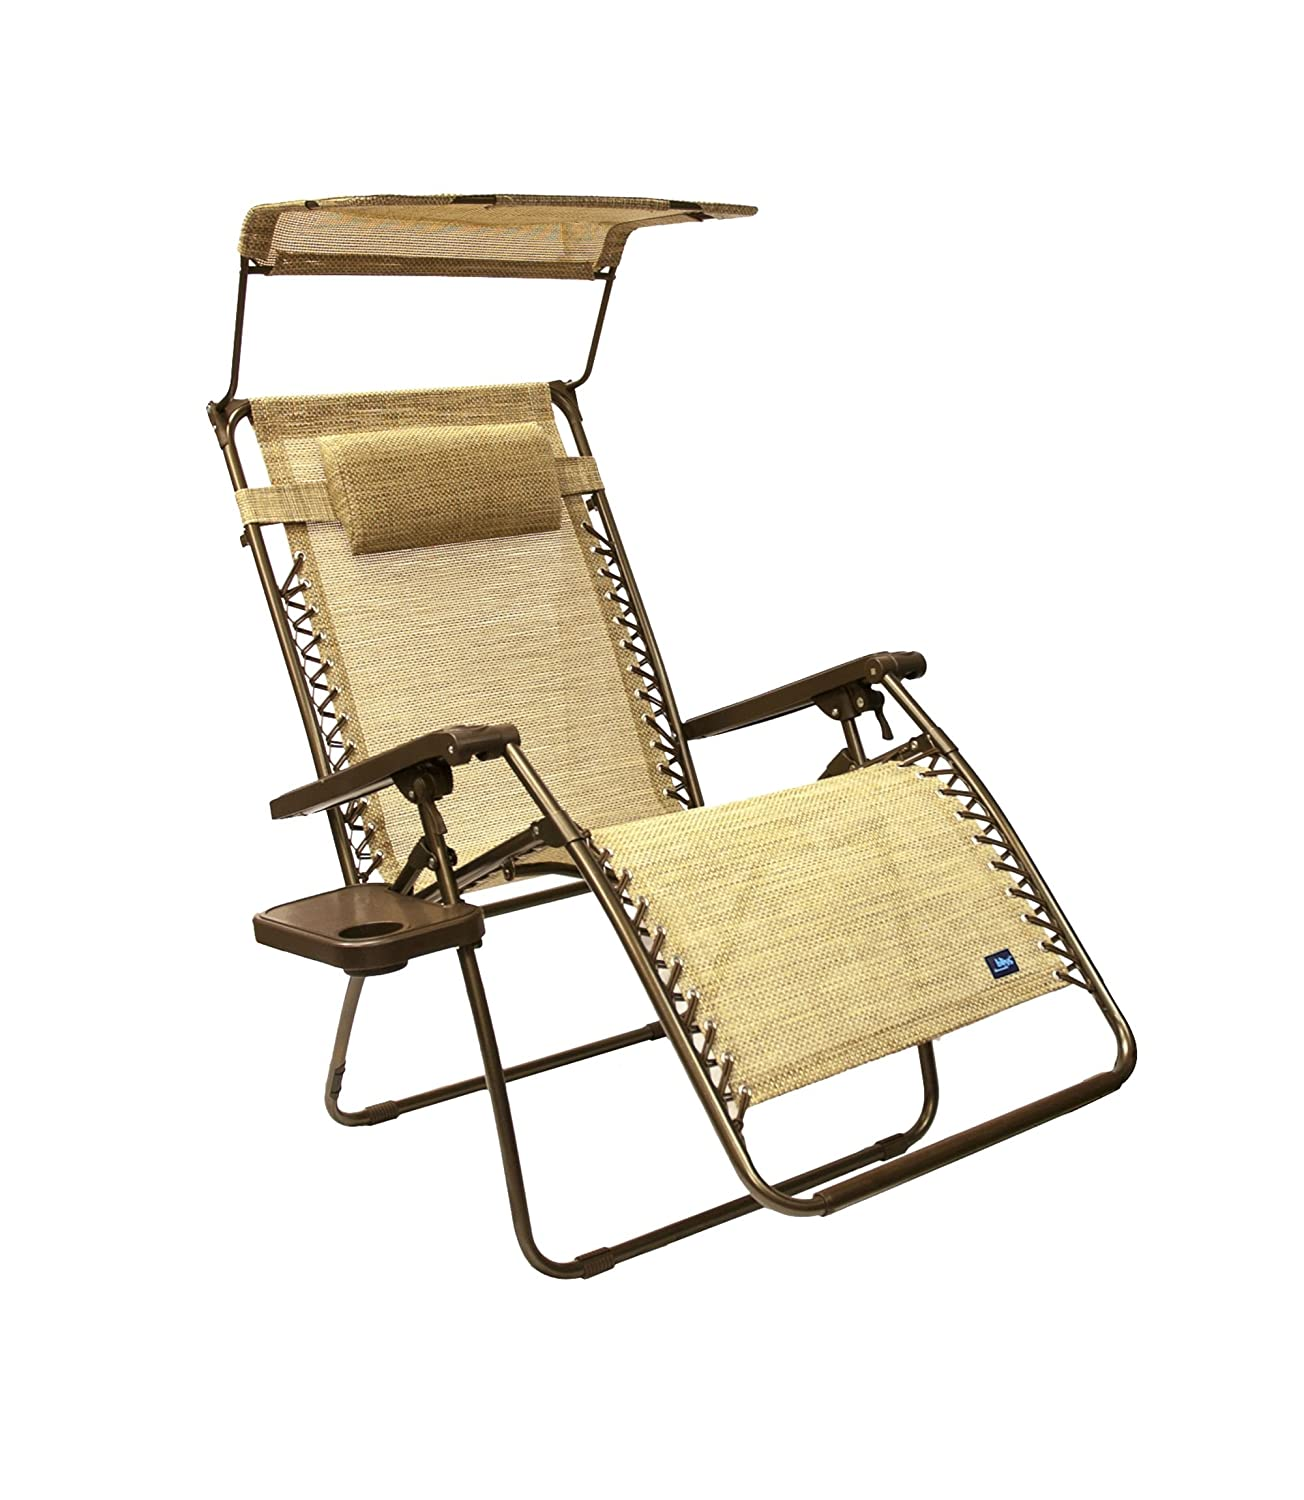 amazon com bliss hammocks wide gravity free lounger chair with